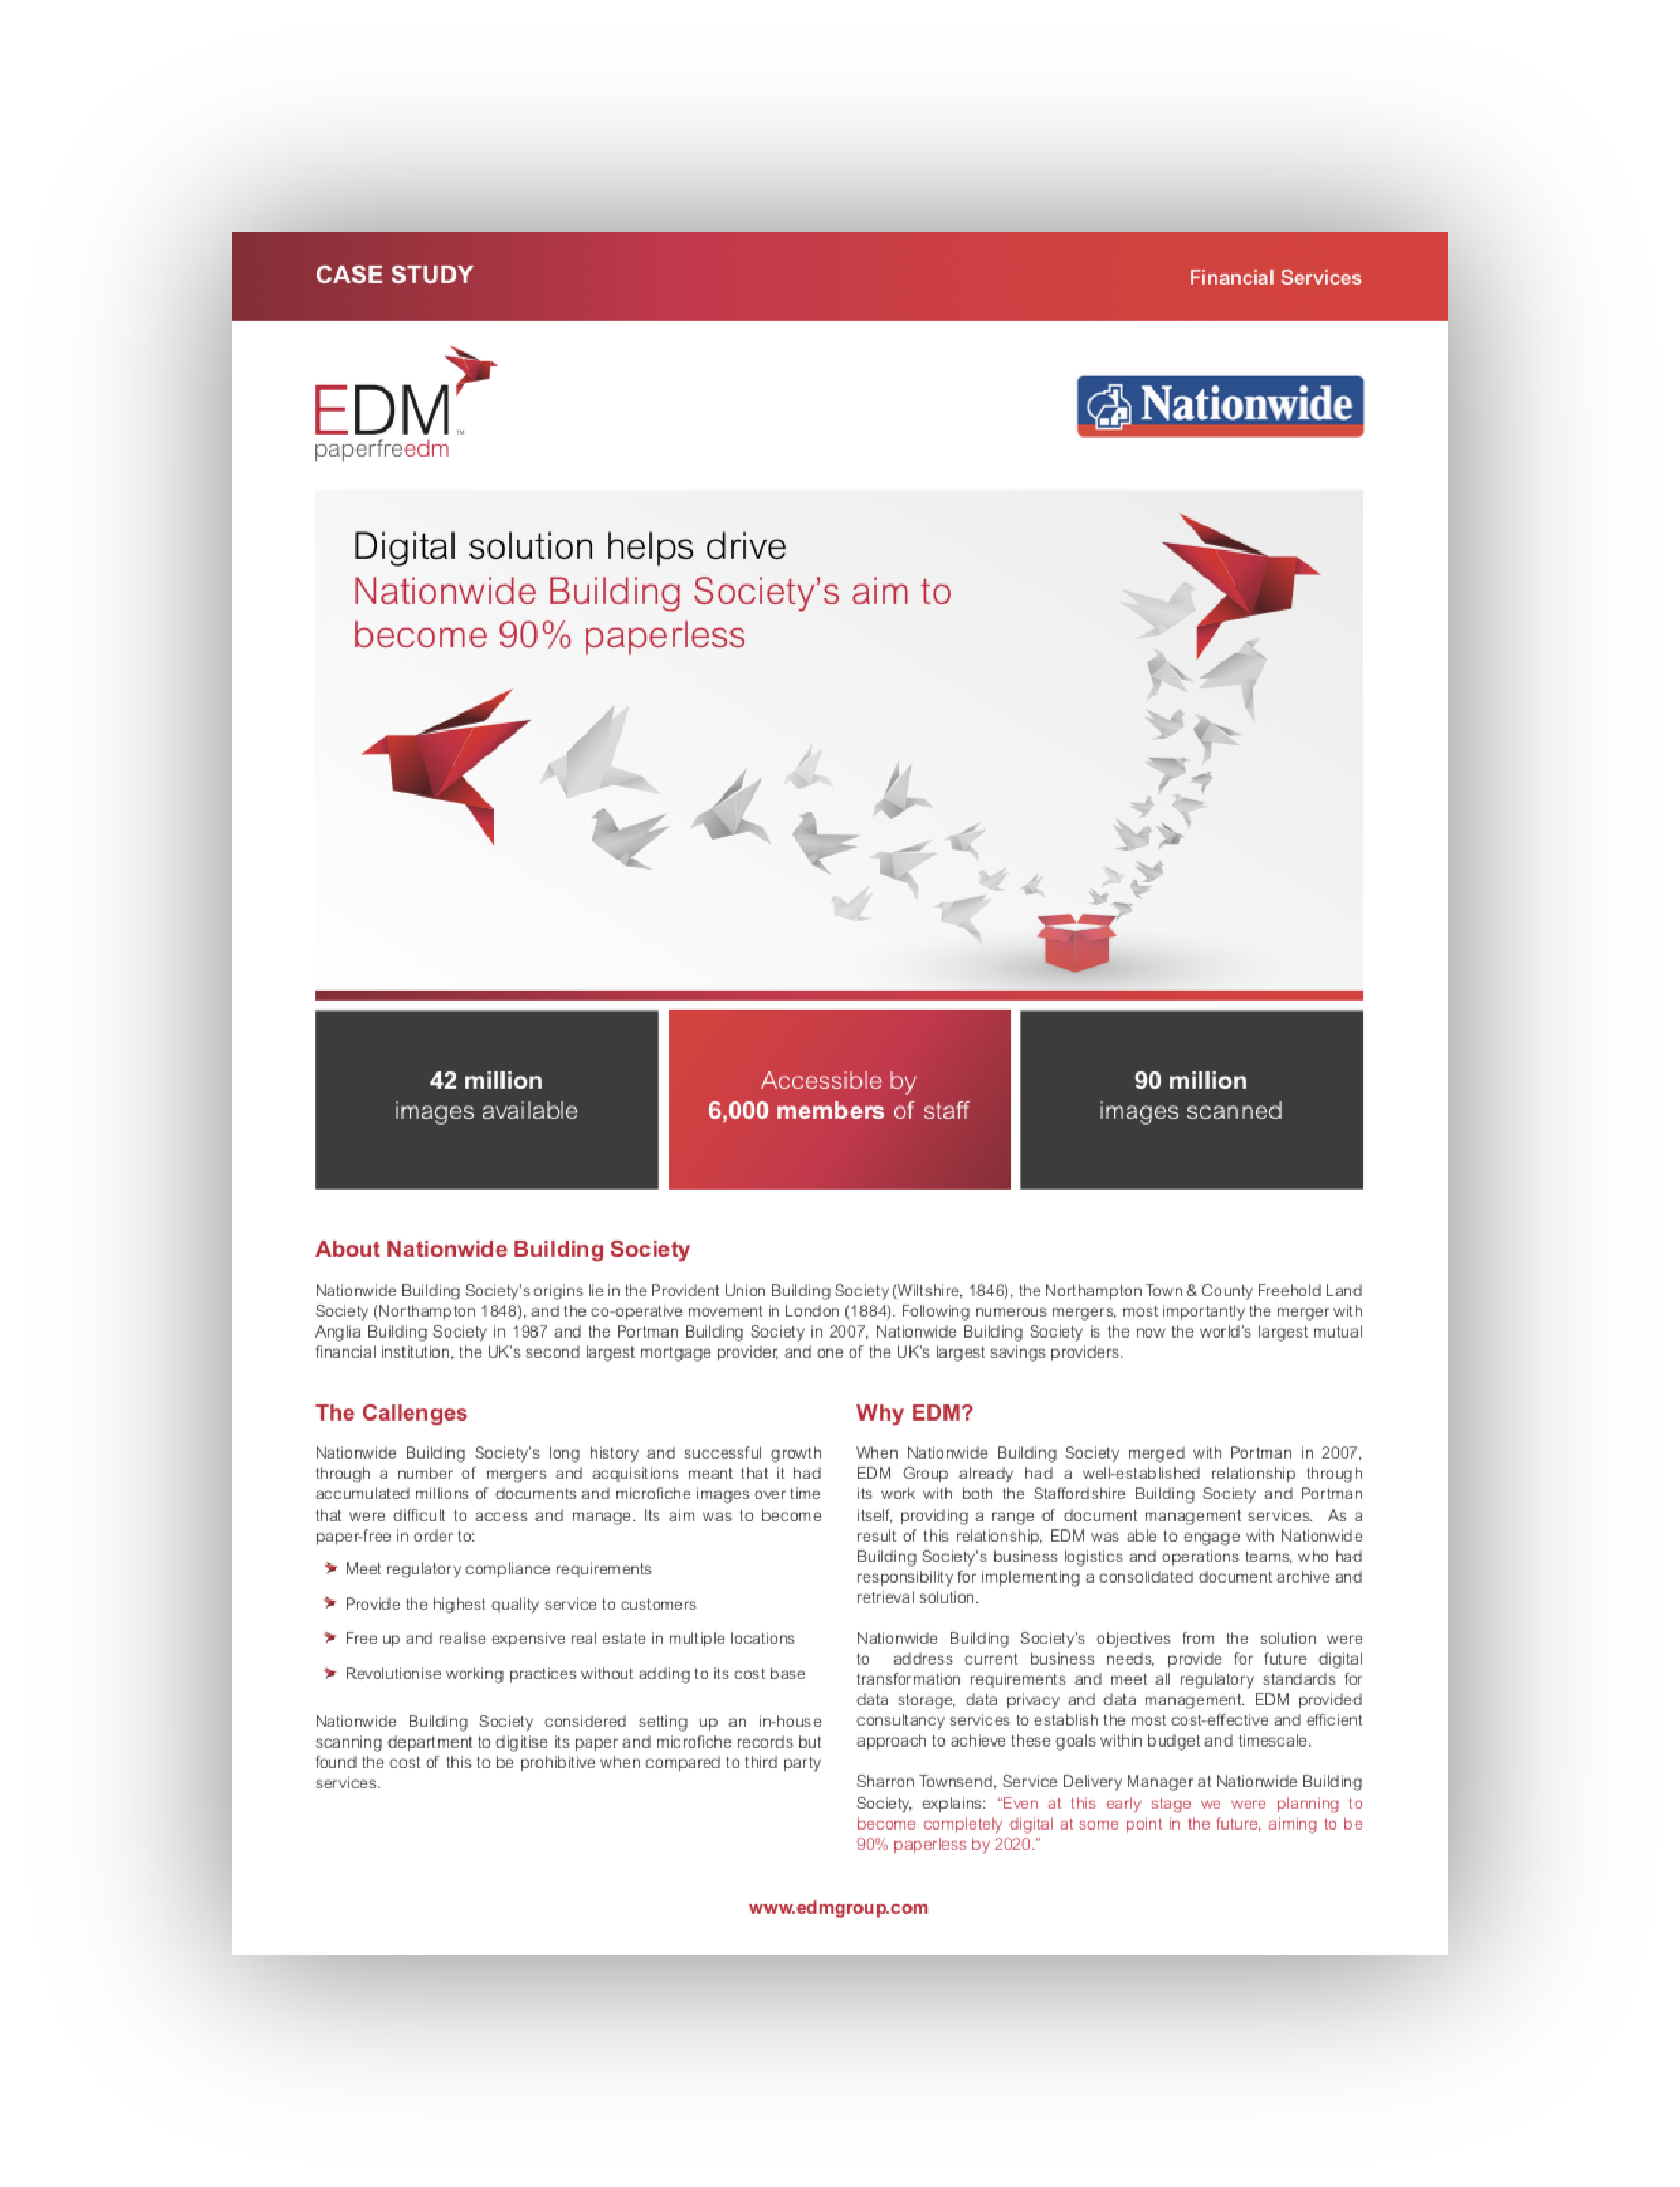 digital-solution-helps-drive-nationwide-building-societys-aim-to-become-90-paperless